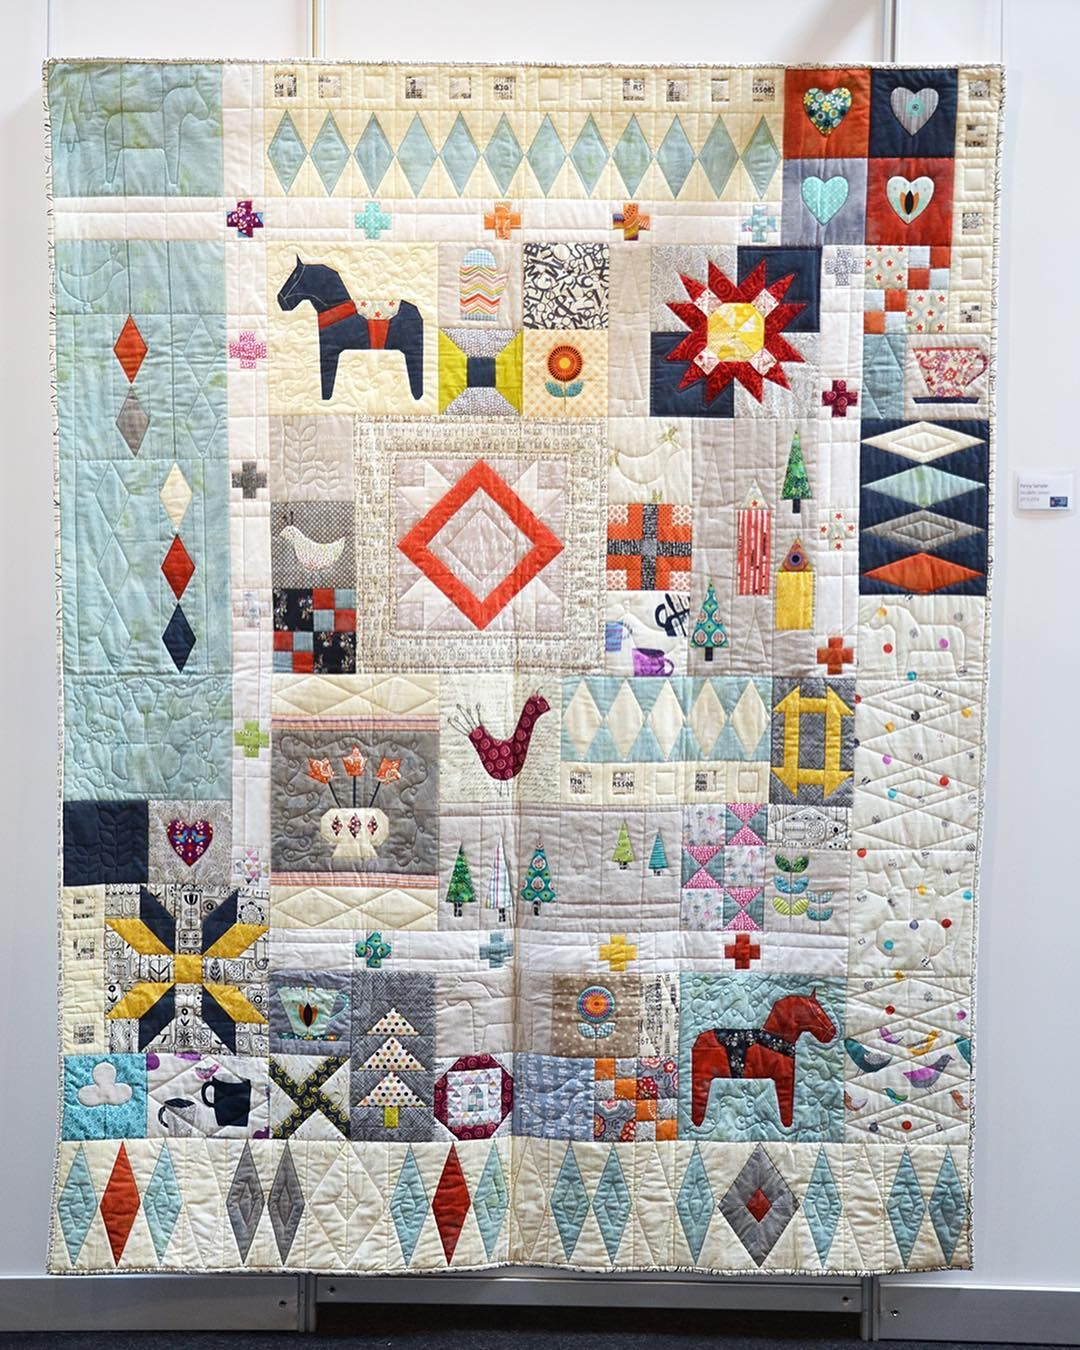 Nicolette Jansen On Instagram My Penny Sampler Quilt Made In An Online Class With Rachel Over At Stitchedincolor The Ba Quilts Sampler Quilt Sampler Quilts